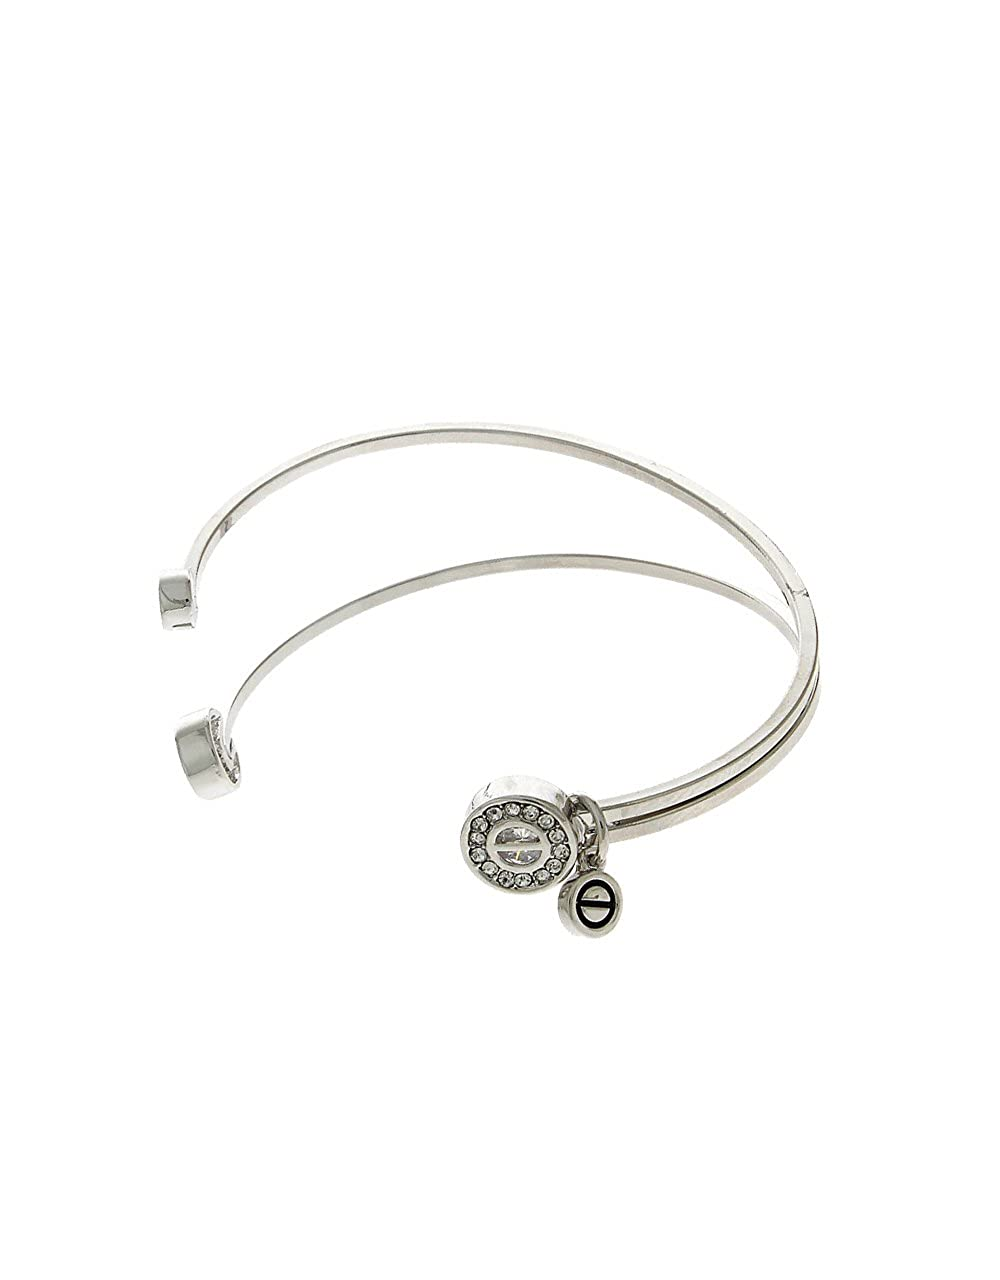 Anuradha Art Silver Finish Different Styled with Shimmering Stone Classy Hand Bracelet//Kada for Women//Girls